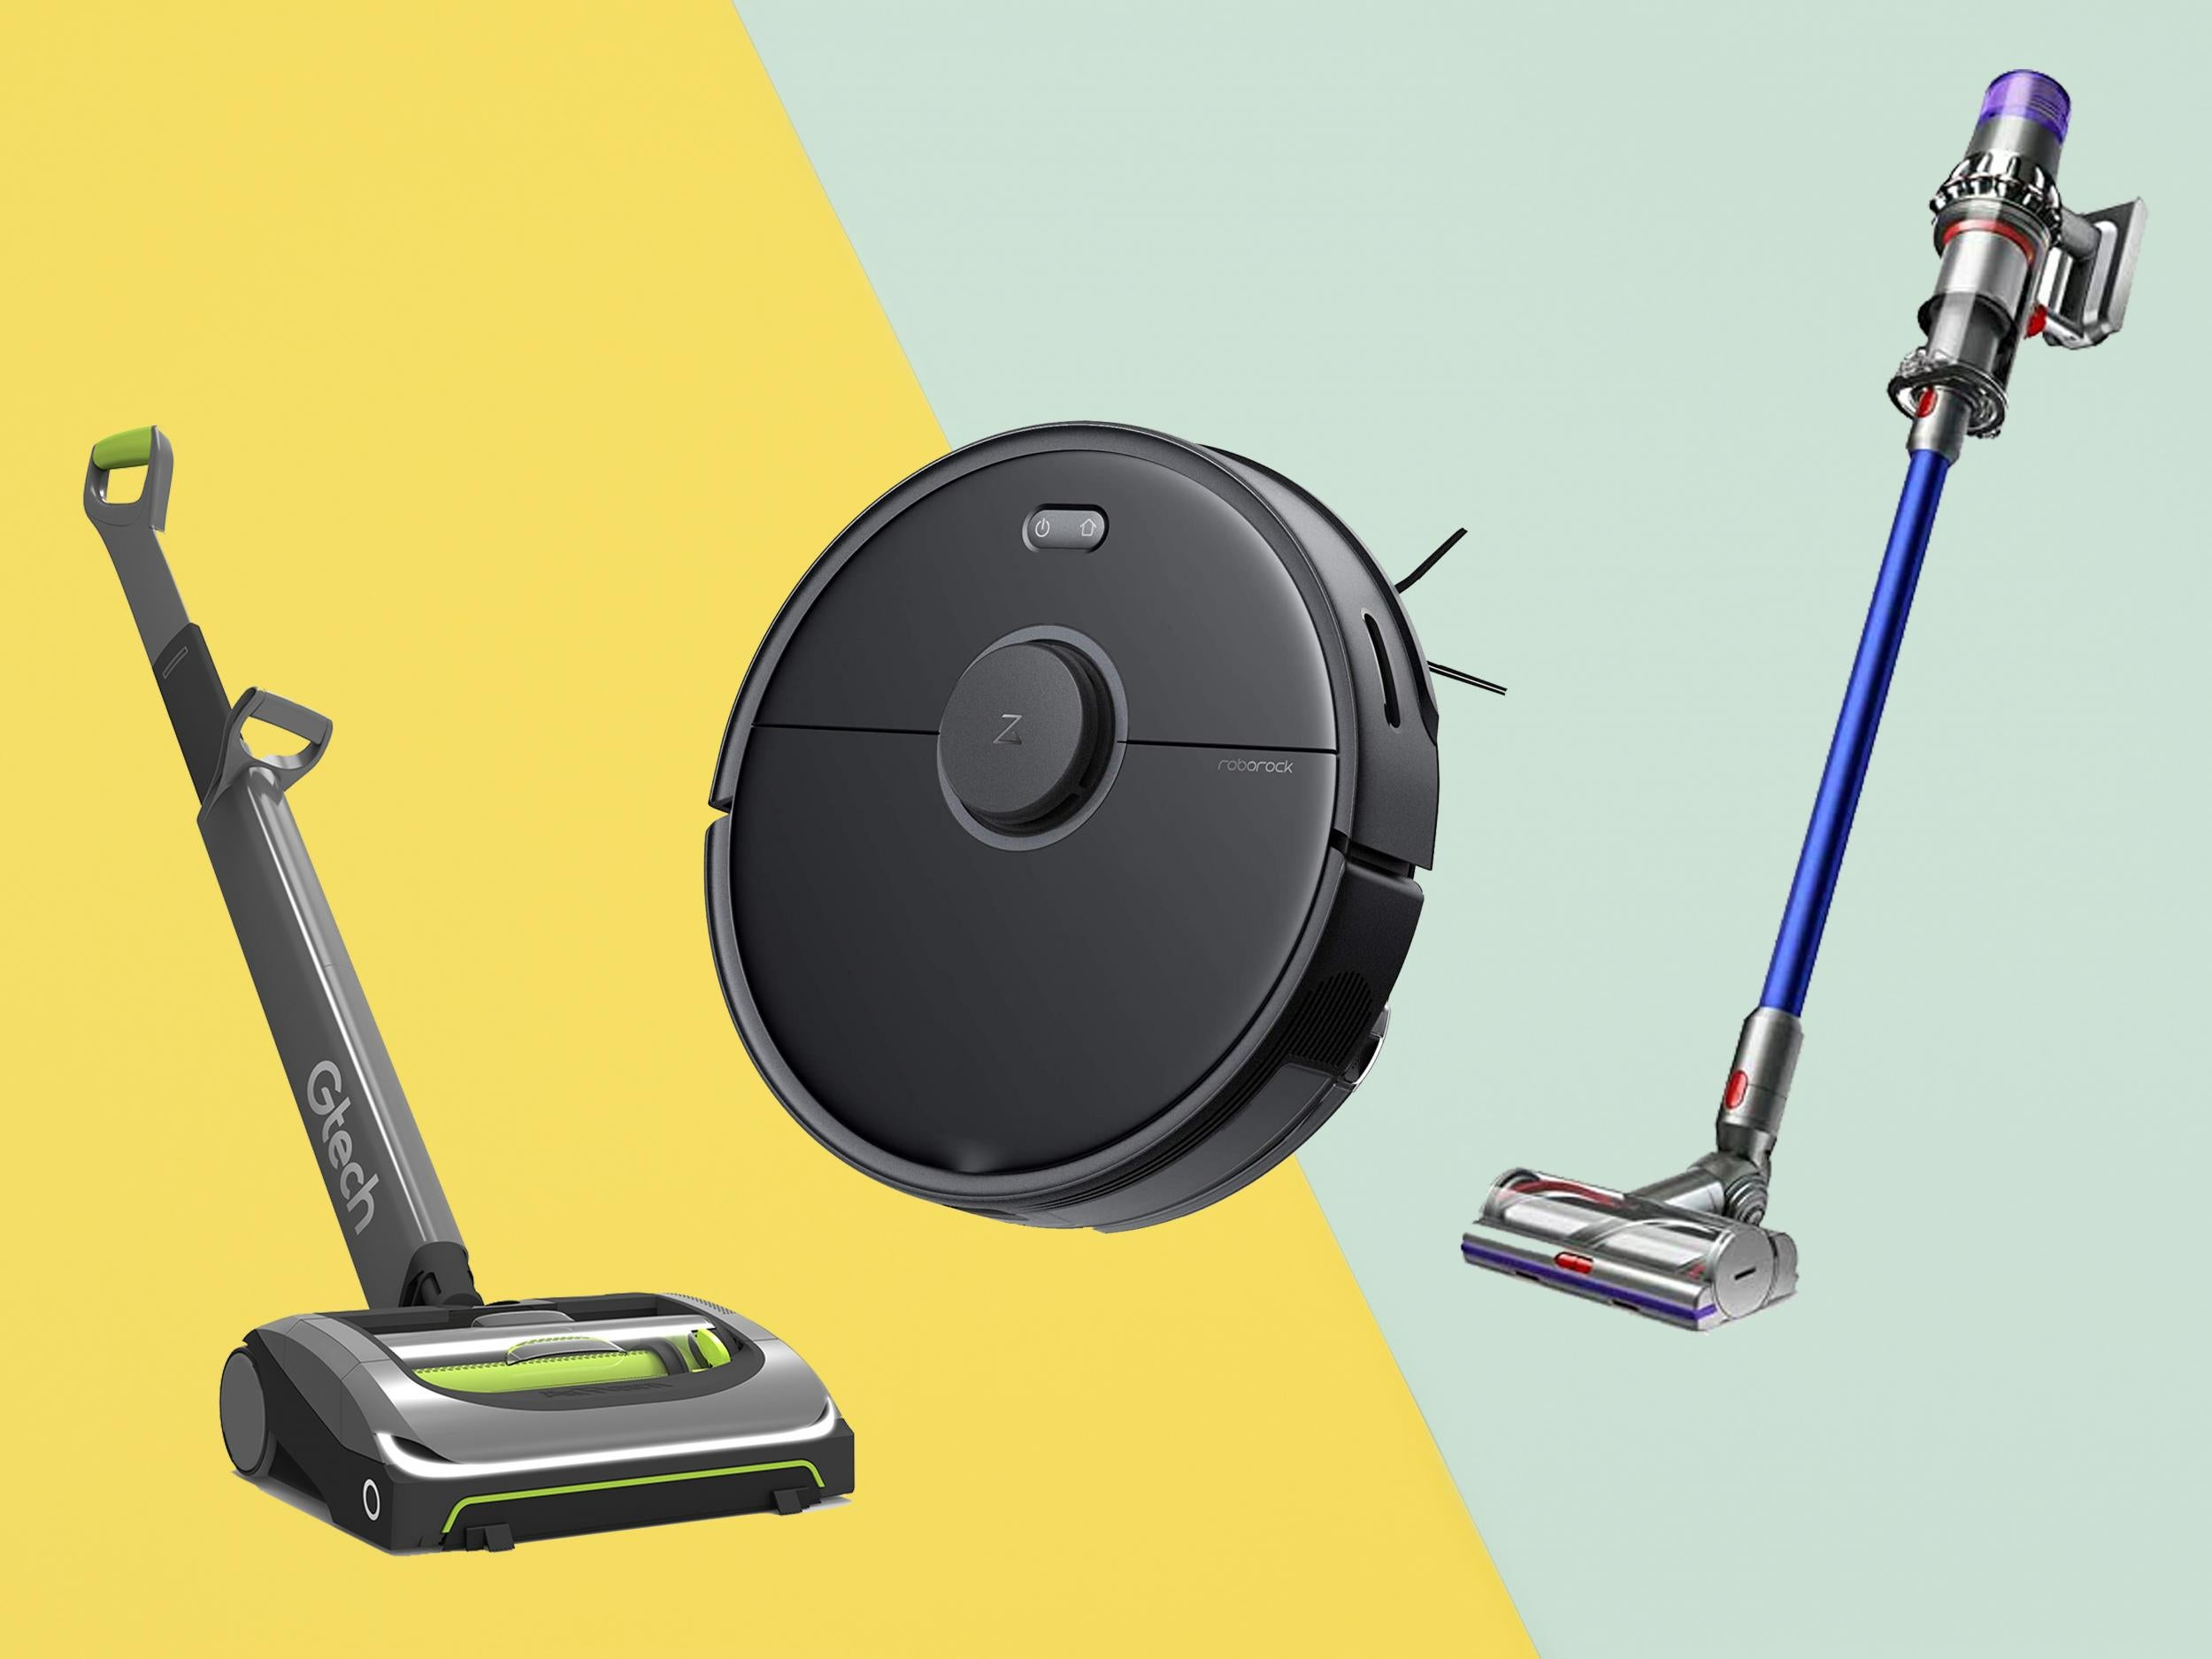 Vacuum cleaner buying guide: How to choose from corded